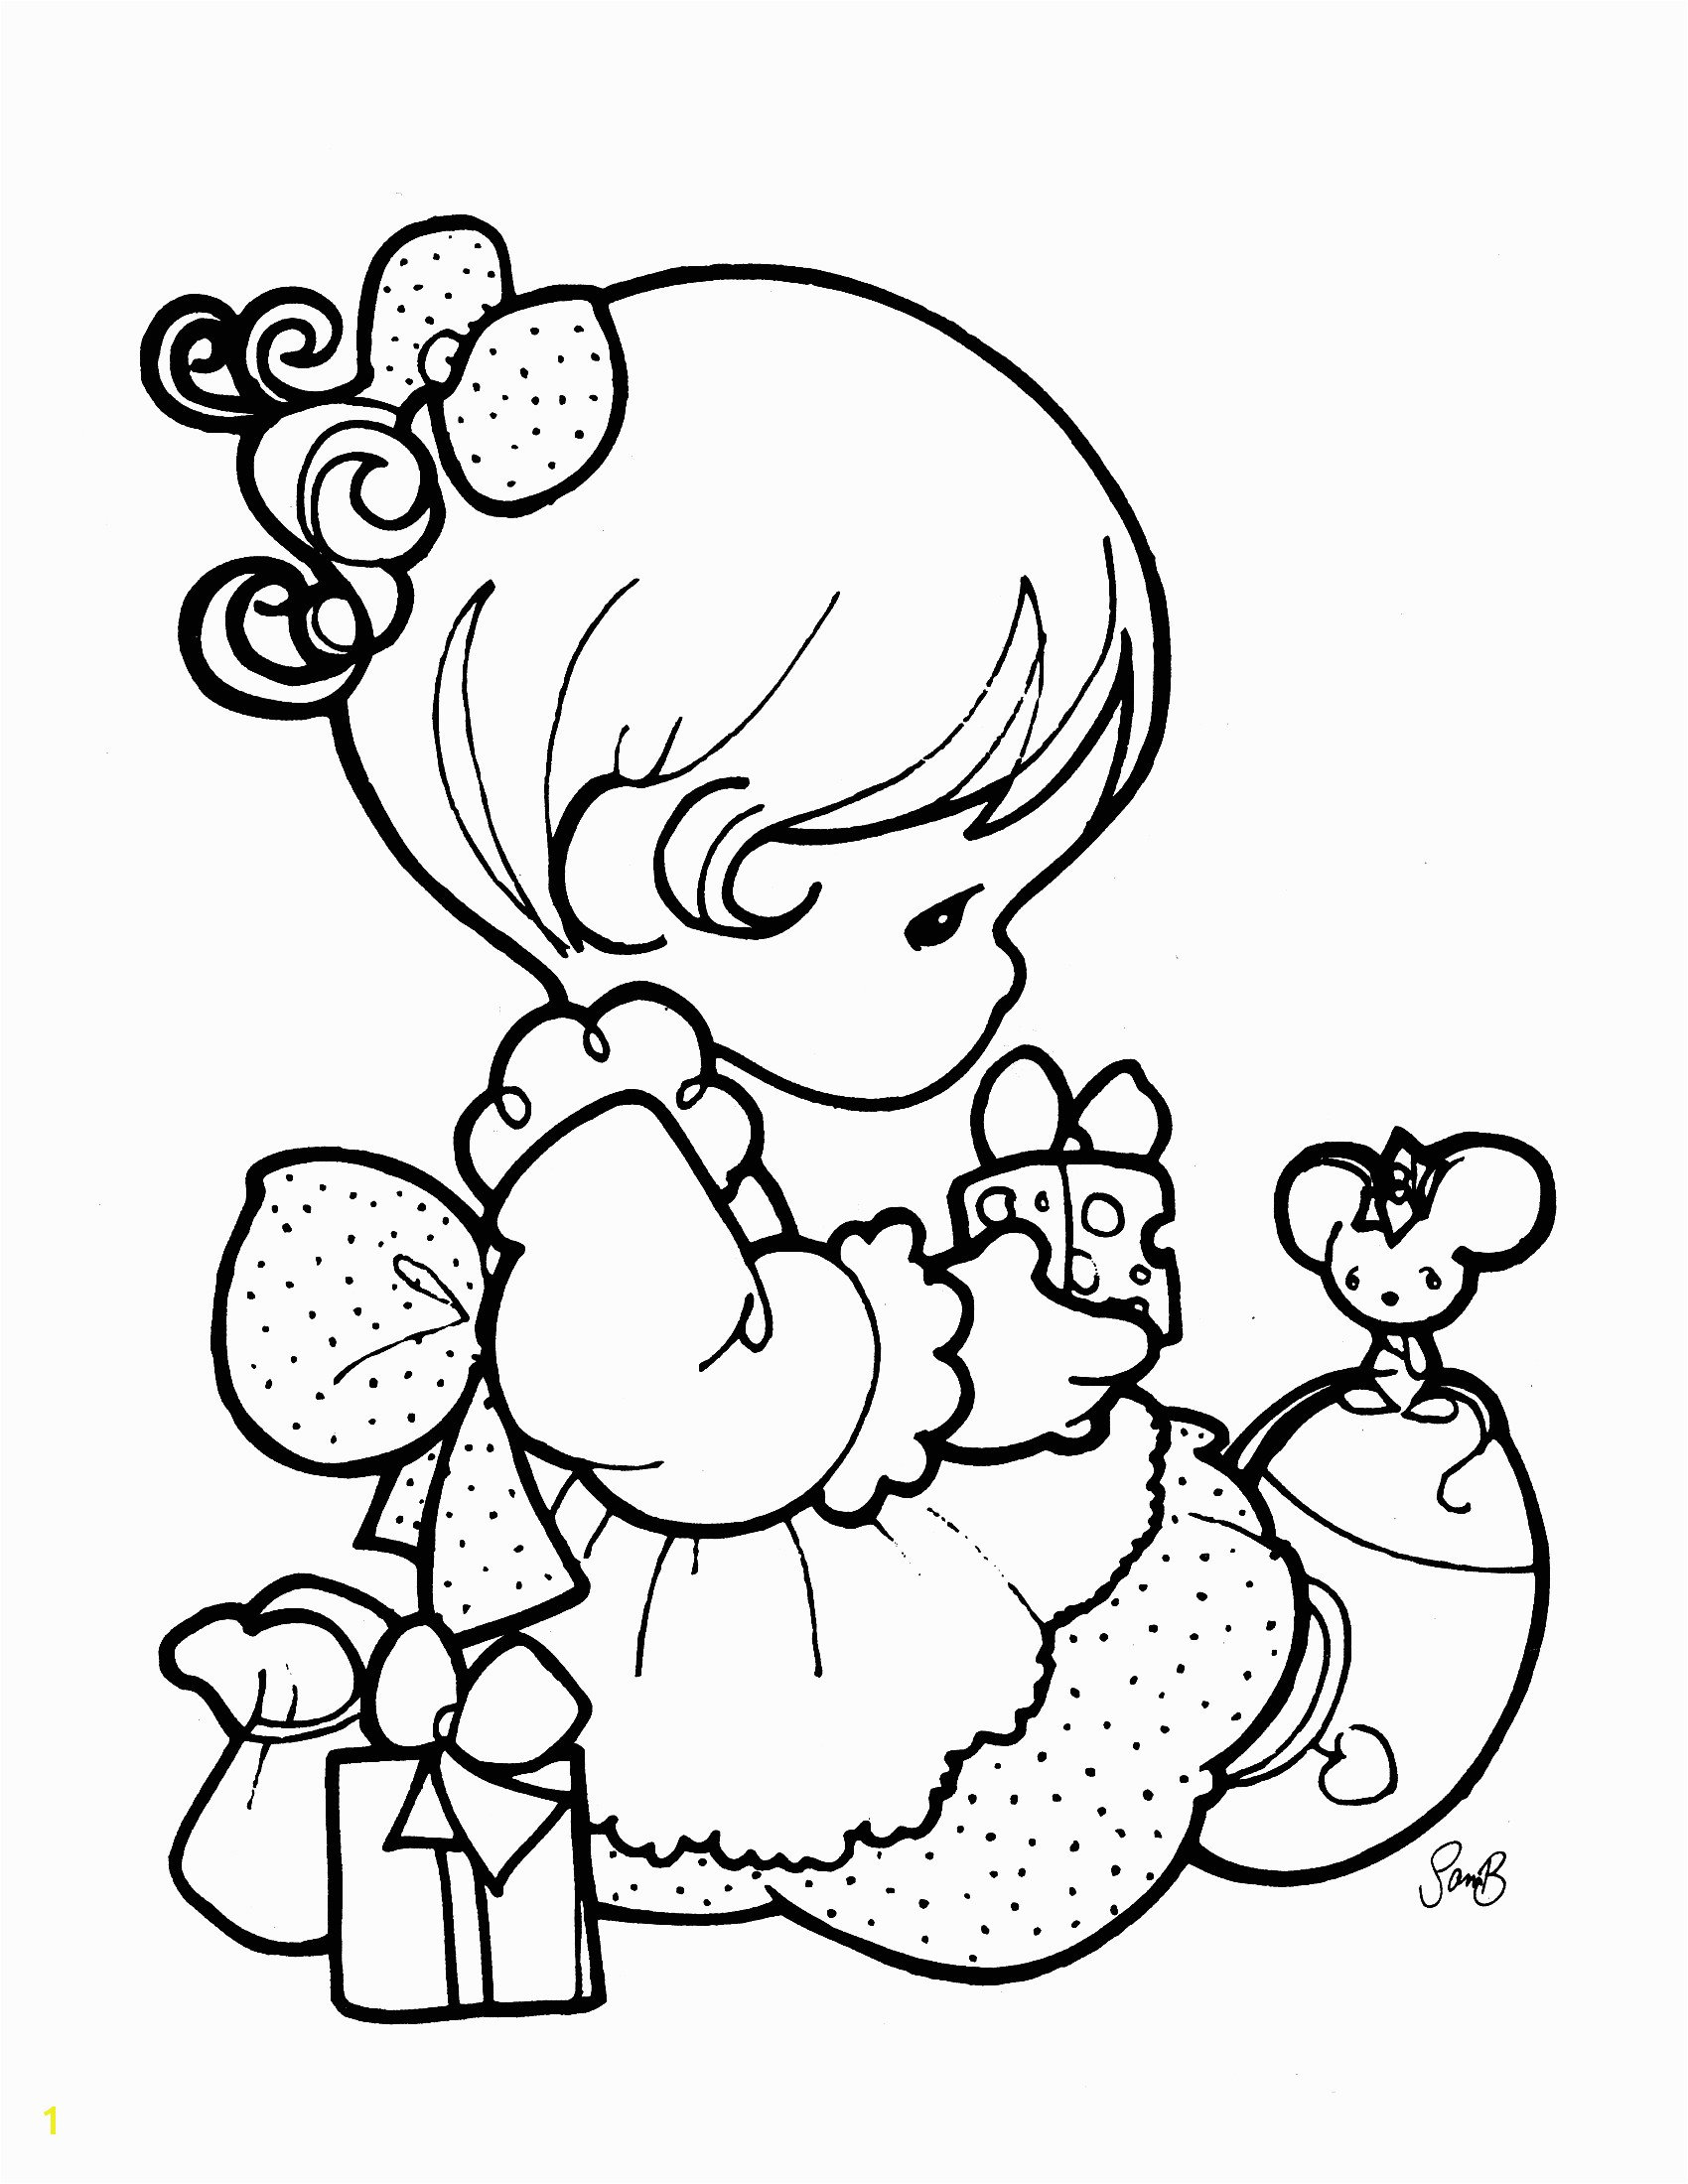 Cute Precious Moments Coloring Pages Cute Coloring Pages for Girls Printable Kids Colouring Girl Sheets